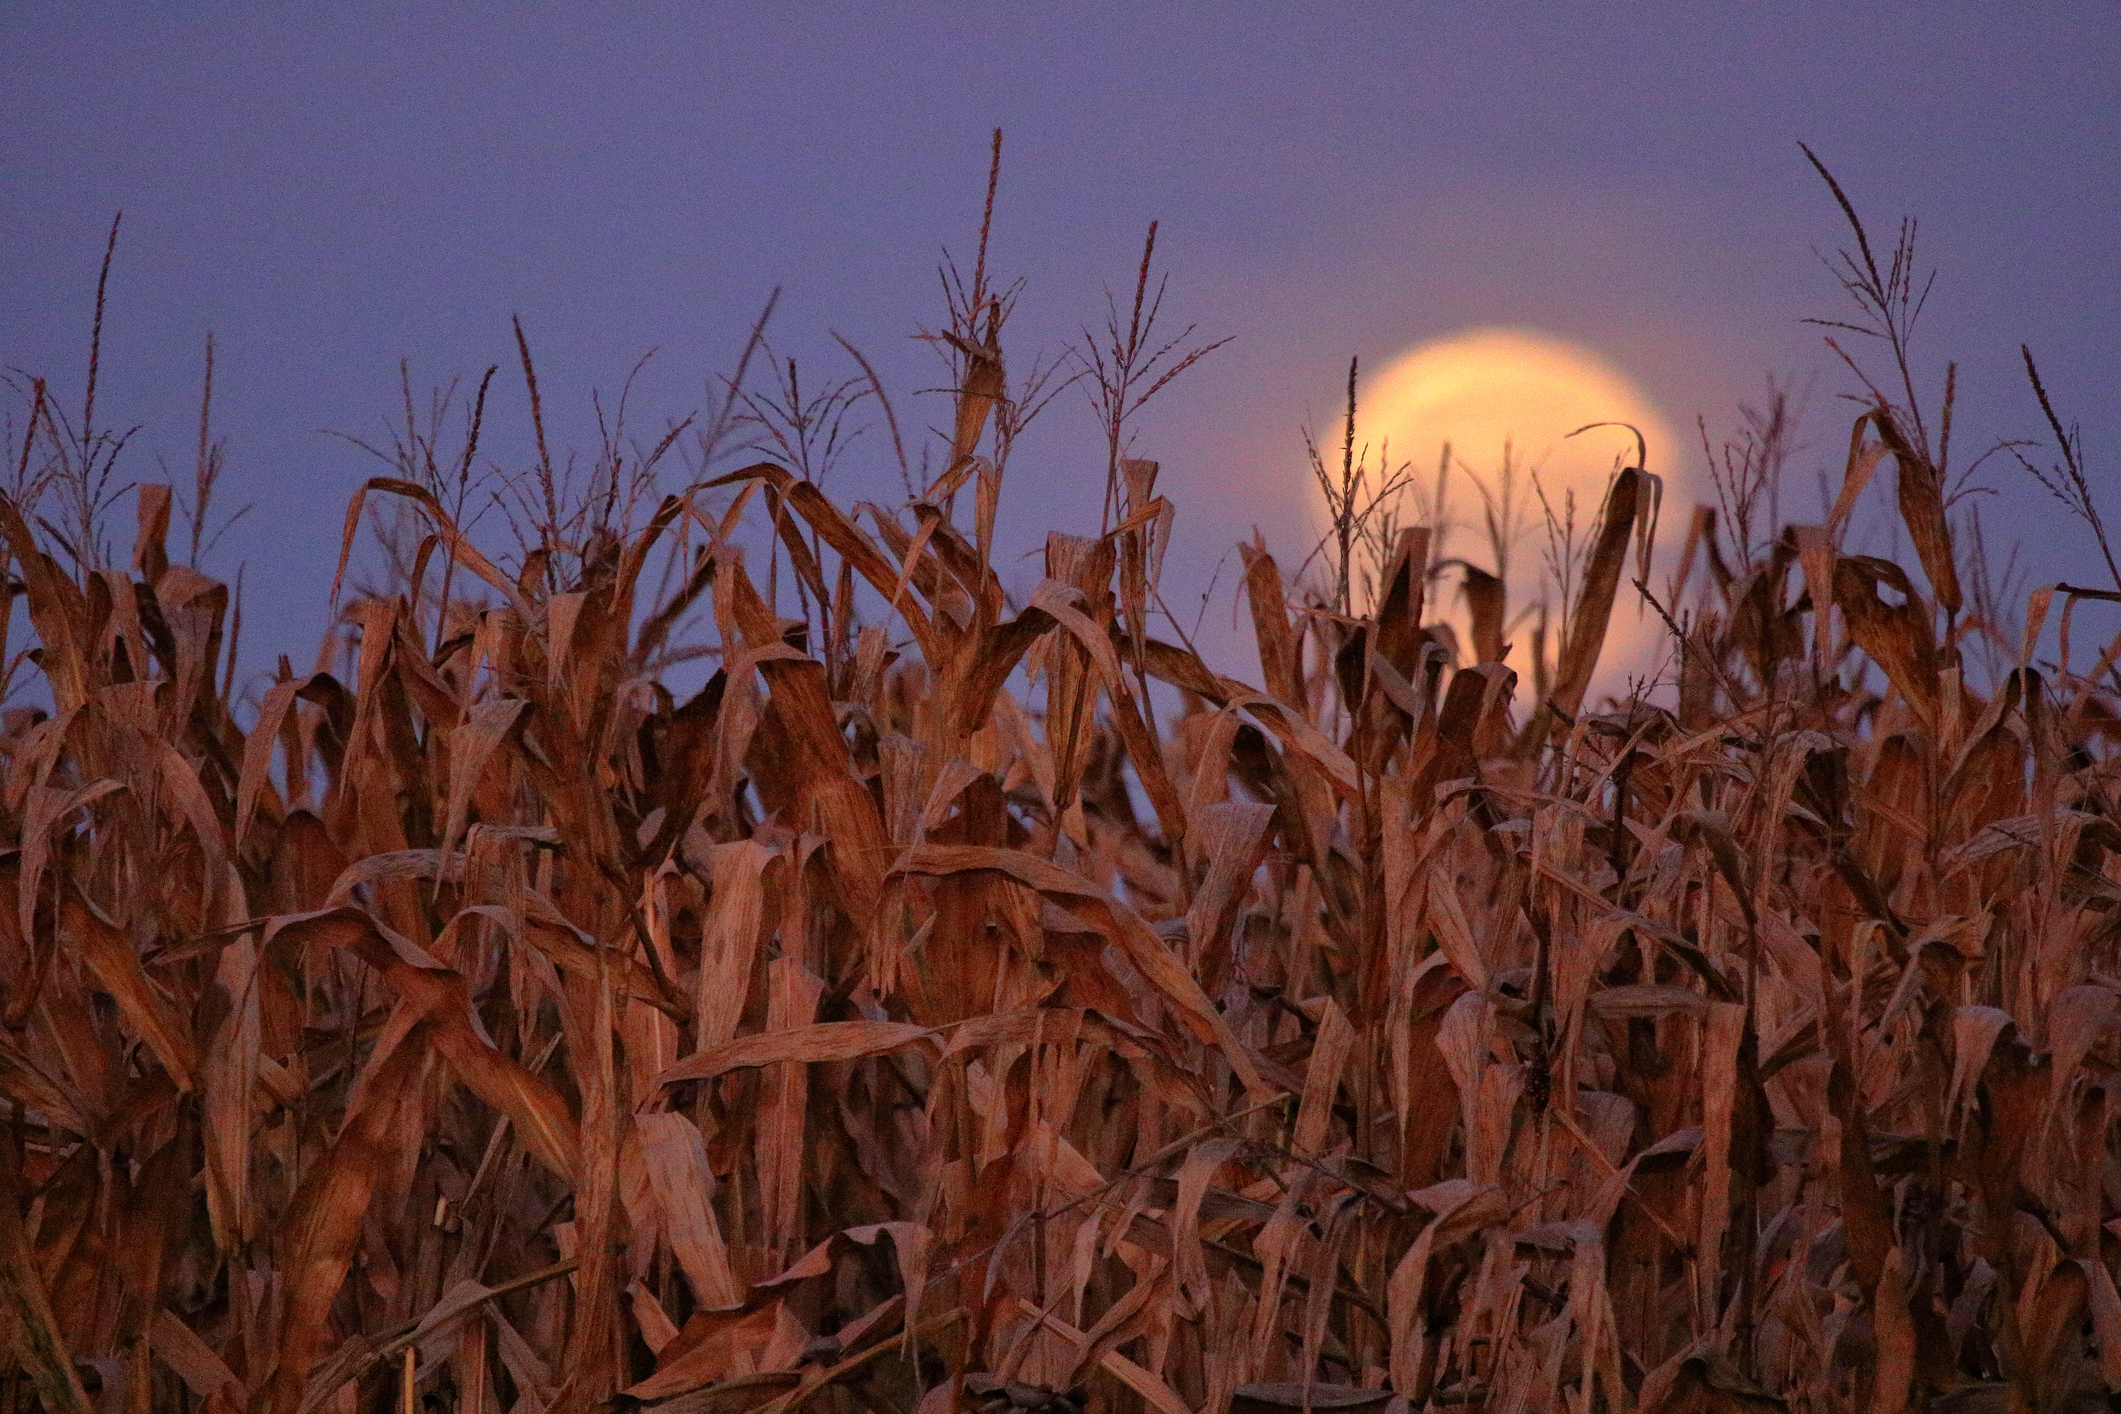 September's Full Corn Moon will rise tonight, so it's time to get your harvest on